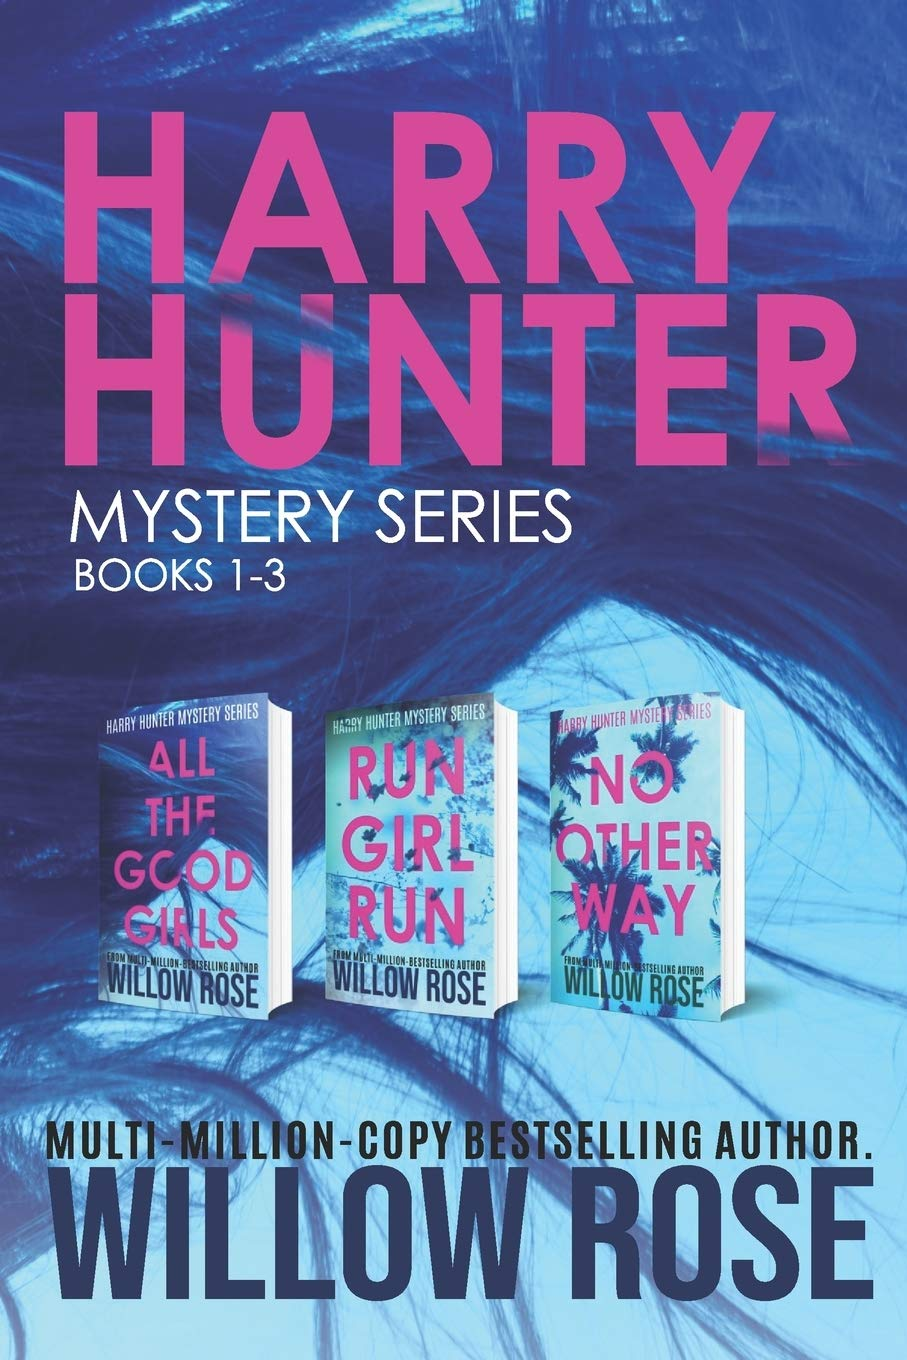 Harry Hunter Mystery Series  Bo - Willow Rose (1)